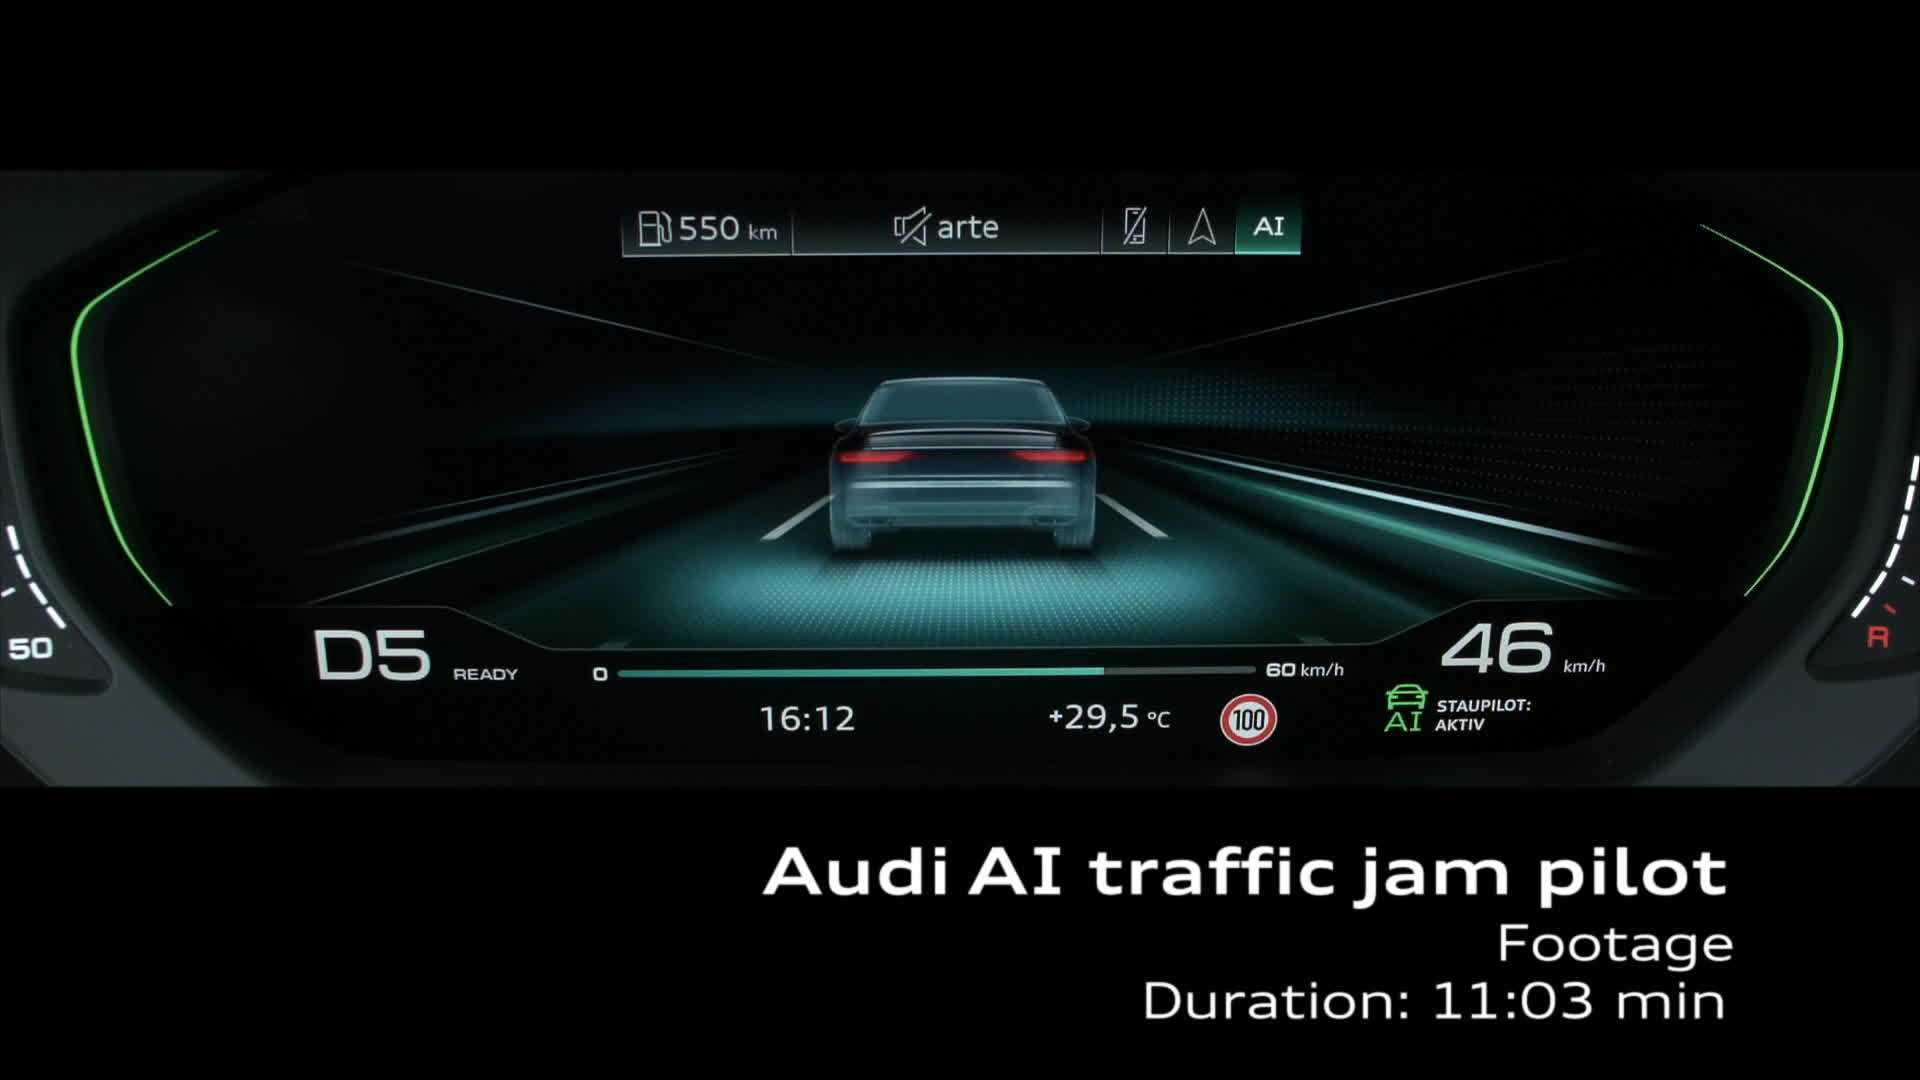 footage audi a8 audi ai traffic jam pilot video audi mediatv rh audi mediacenter com audi ai traffic jam pilot system audi traffic jam pilot review